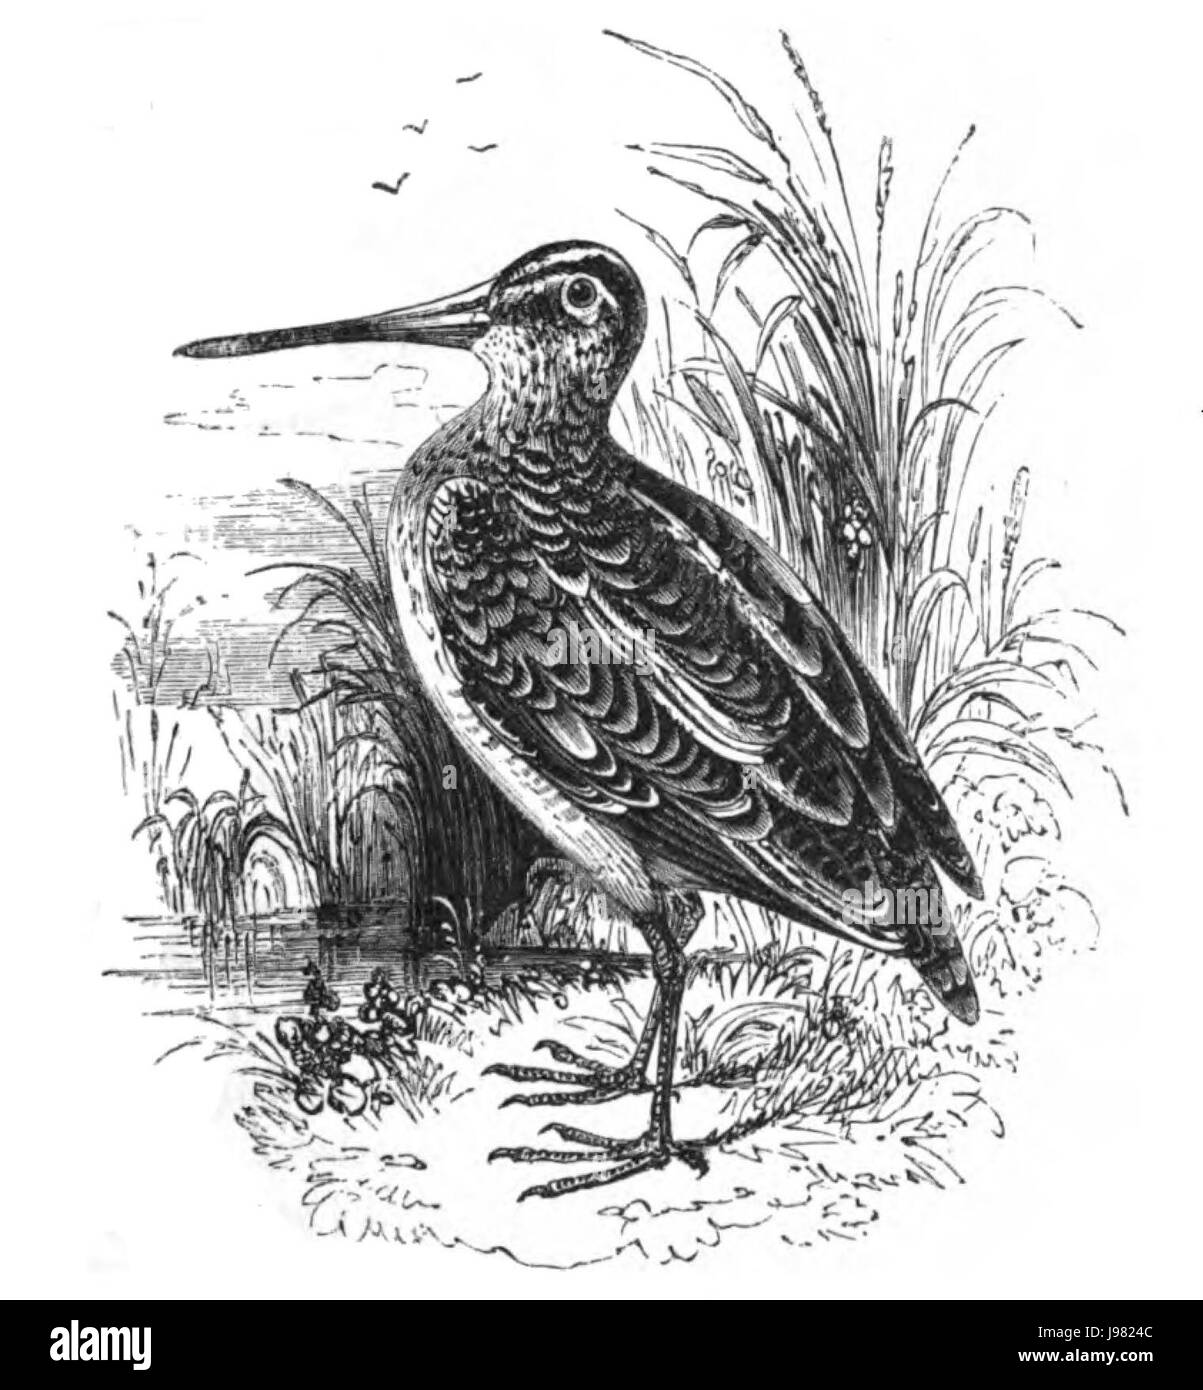 Natural History, Birds   Snipe - Stock Image